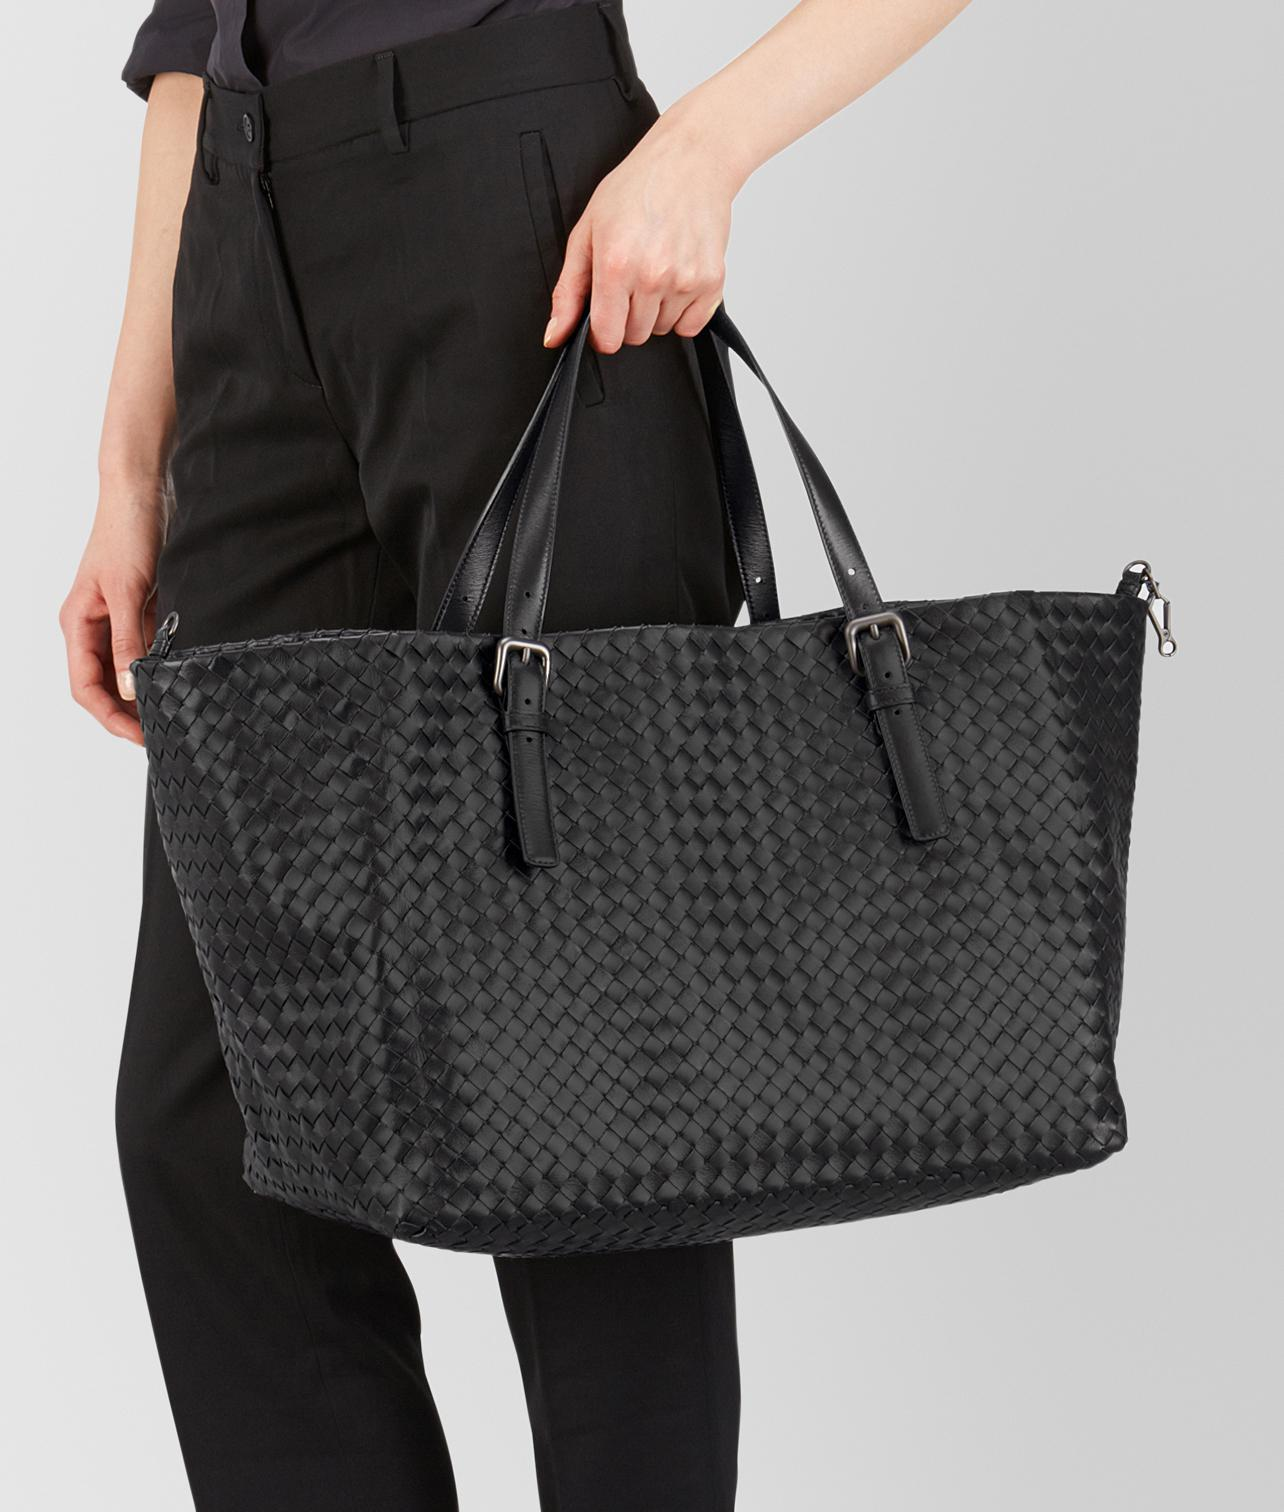 861bcd290713 Lyst - Bottega Veneta Nero Intrecciato Nappa Large Cesta Bag in Black